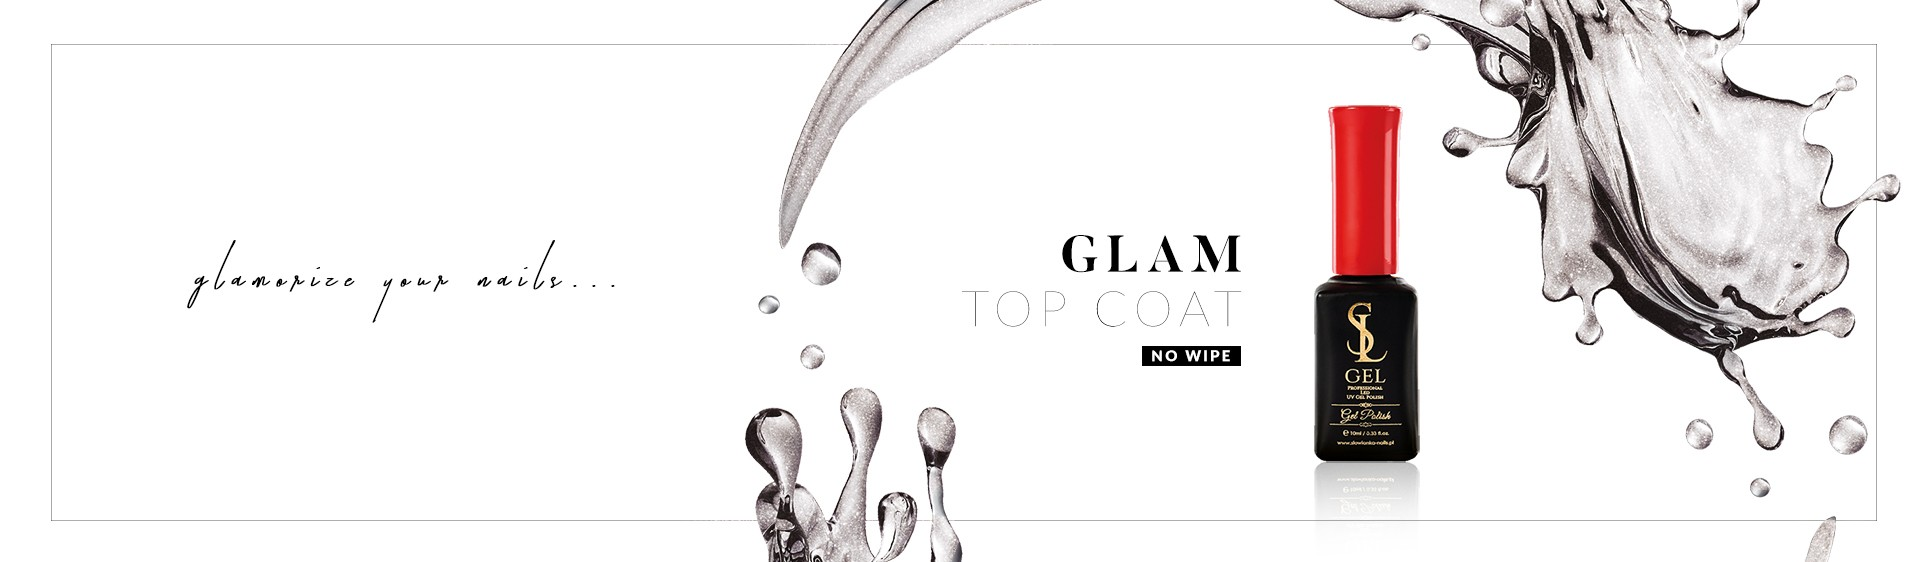 Glam Top Coat